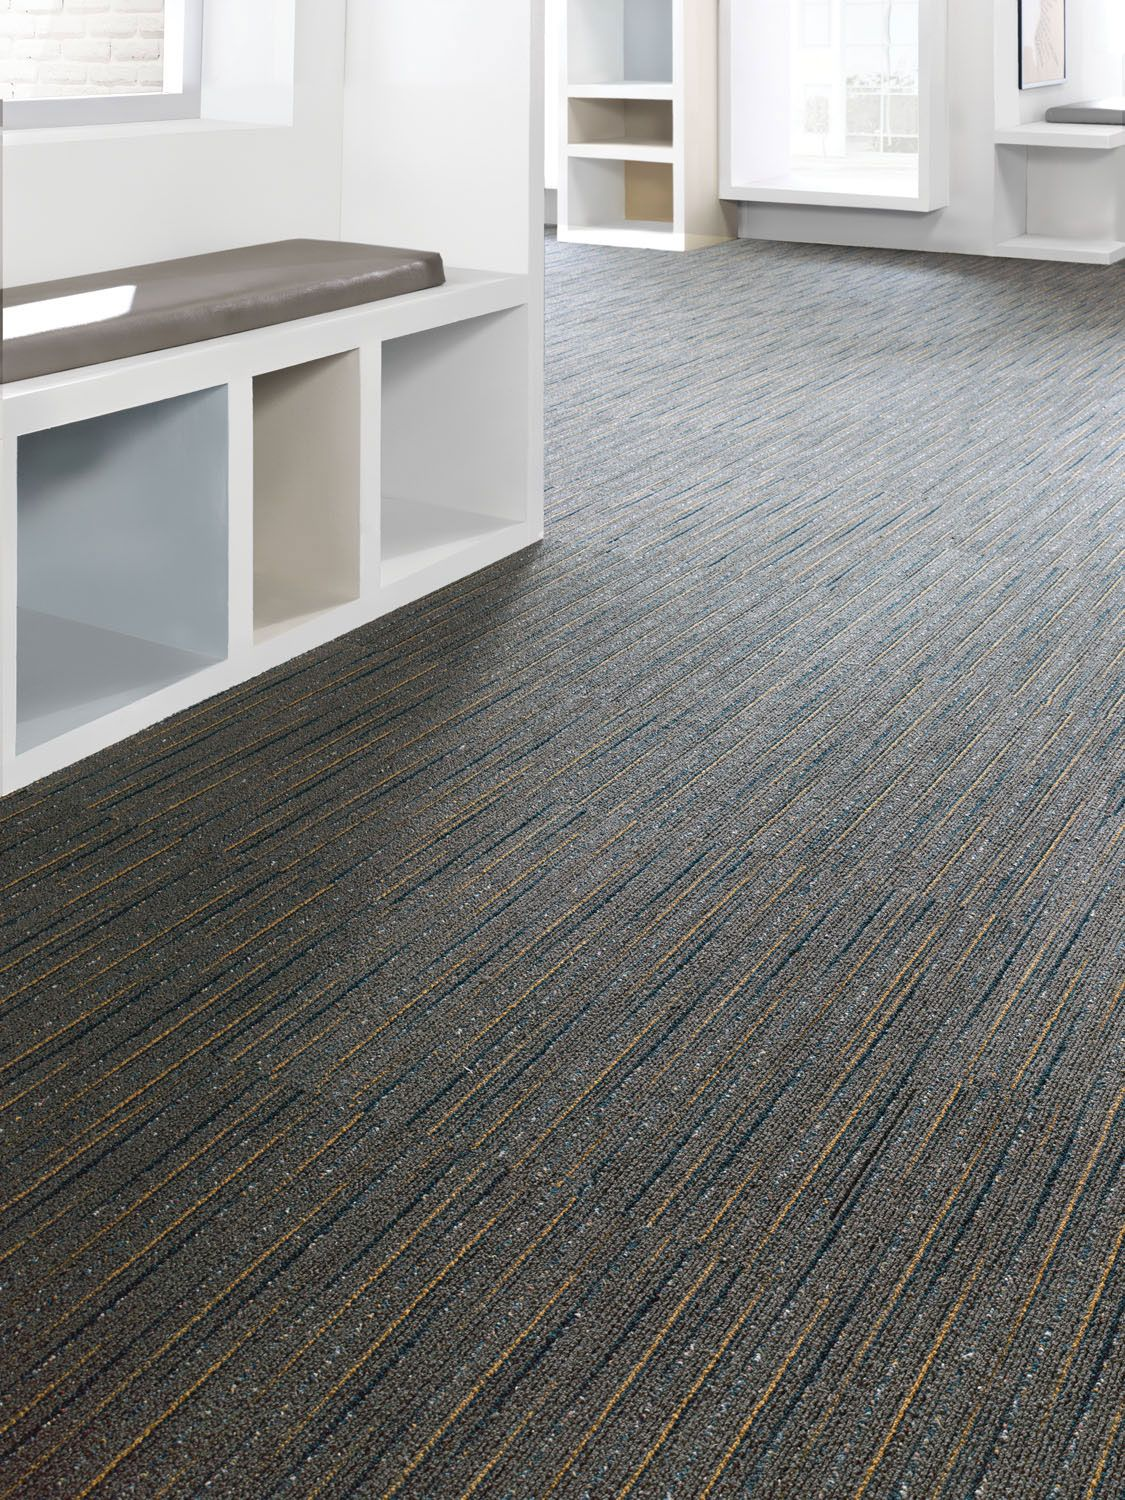 Mohawk carpet retailers meze blog for Mohawk flooring